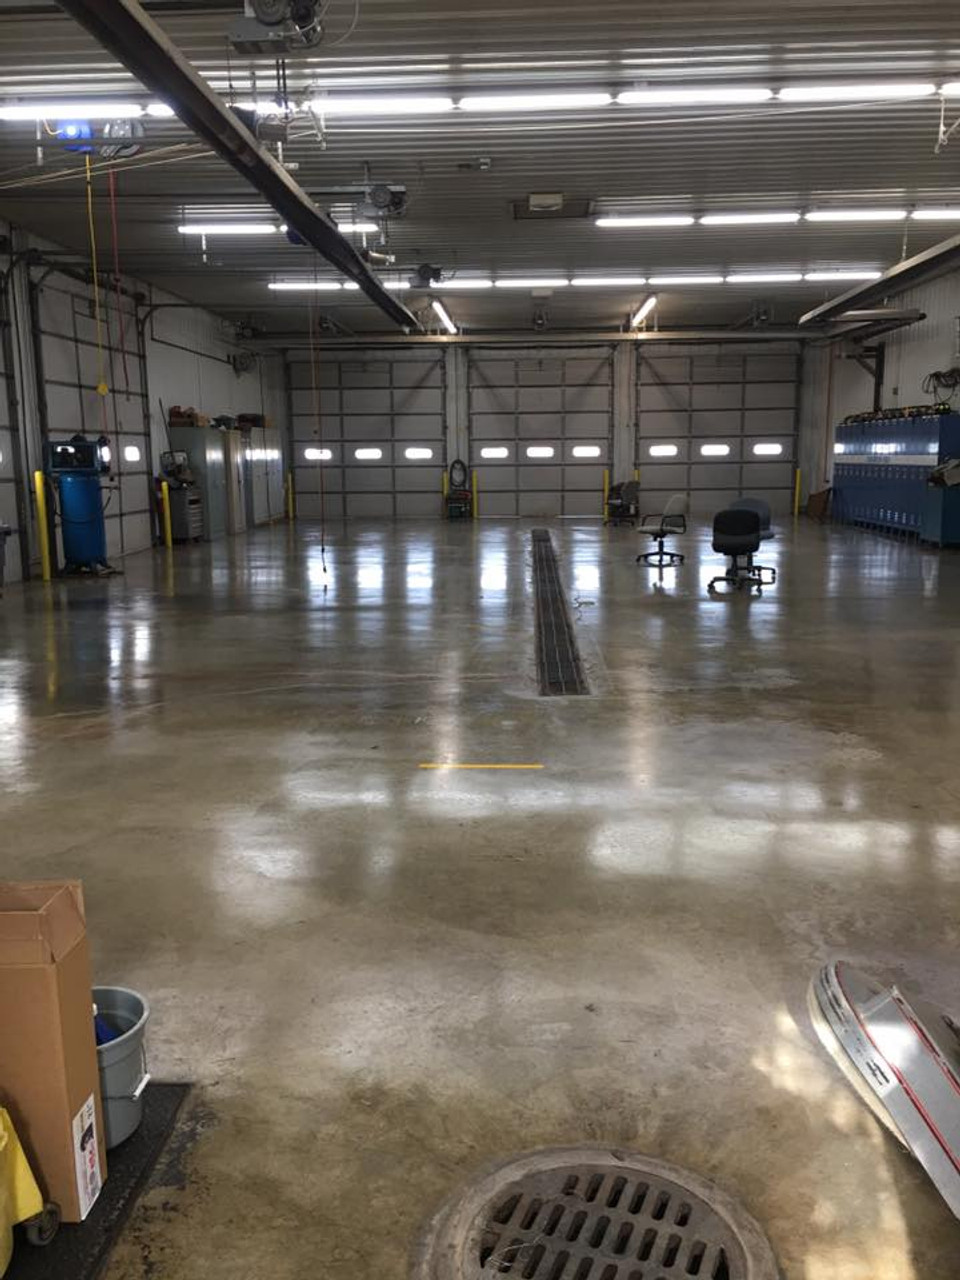 Another view of the Brighton IL Fire Department Concrete Floor Sealed with Firehouse WP Concrete Sealer and topped with Awesome 21 Floor Finish. By Chucks Cleaning Service.